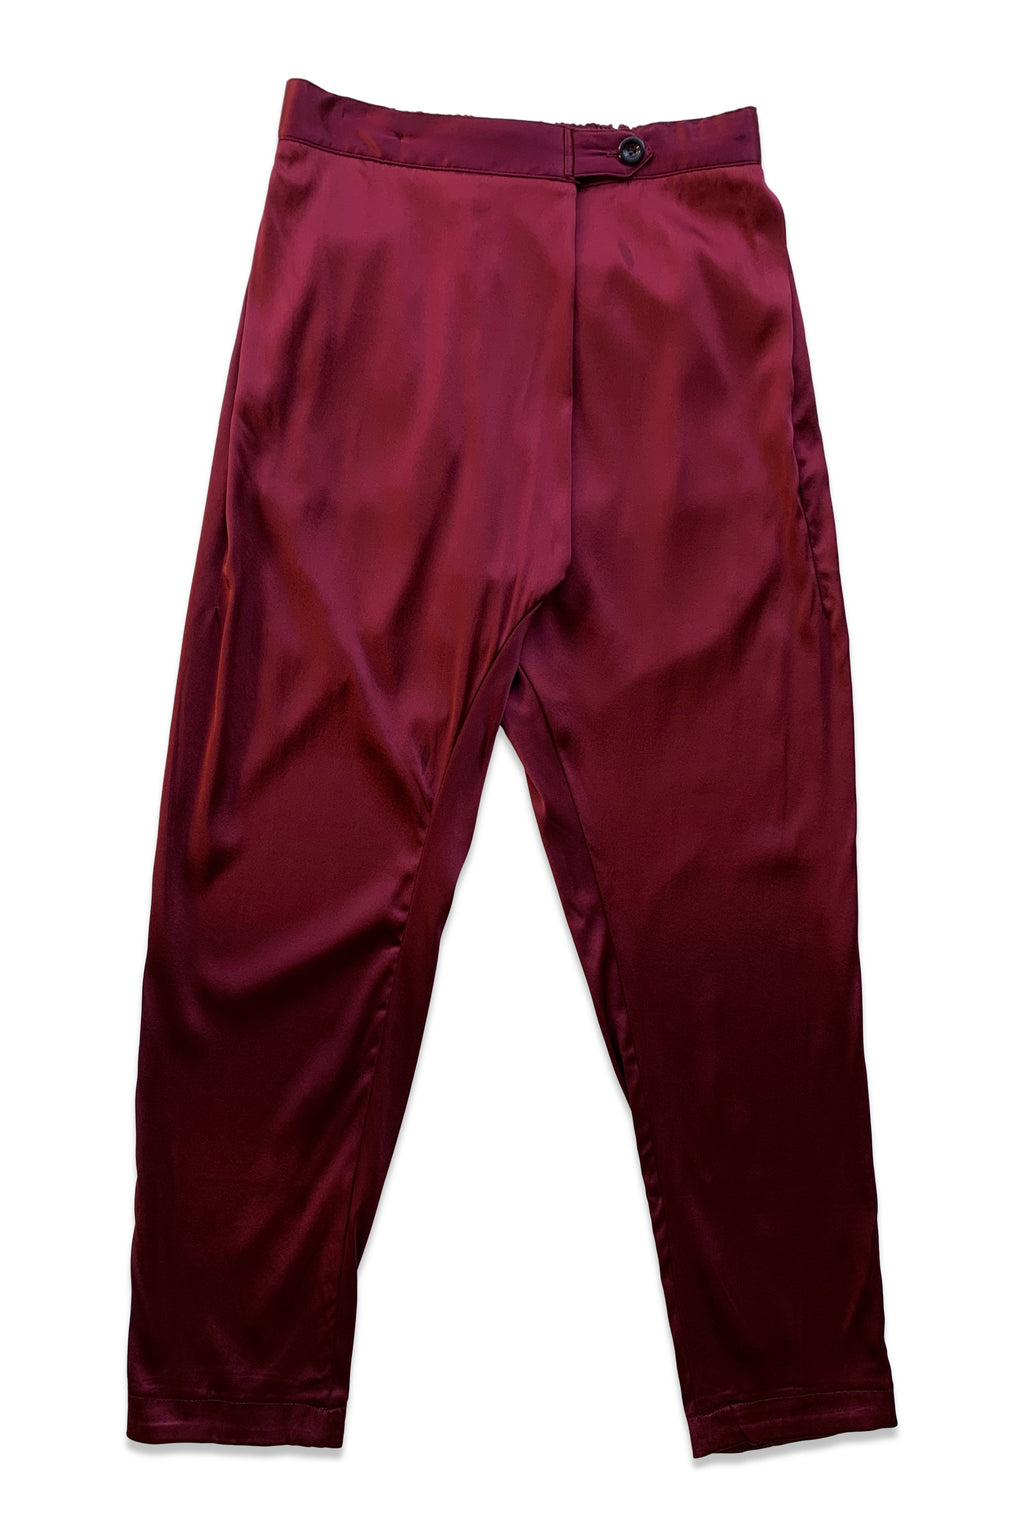 Silk Souk Pant in Oxblood